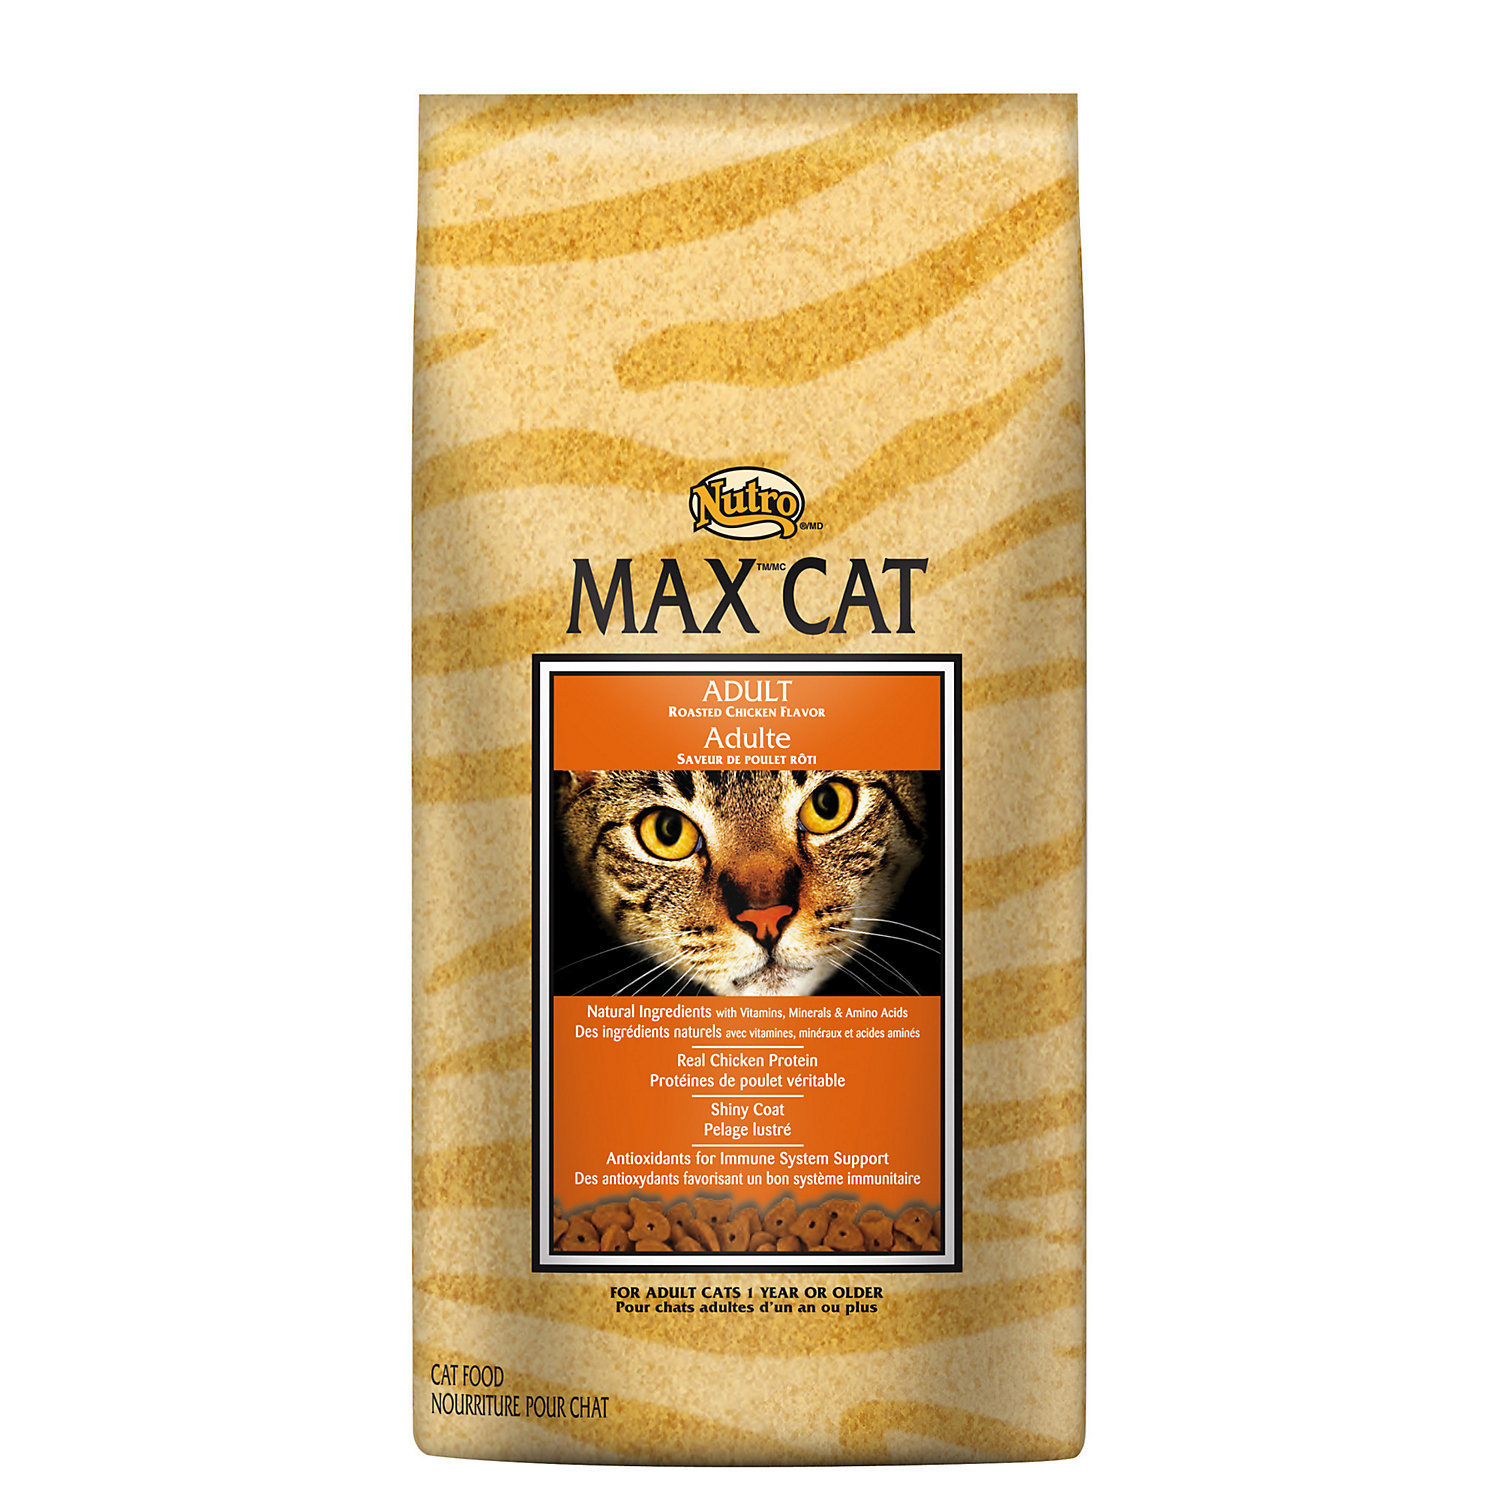 Nutro MAX CAT Adult Cat Food - Chicken Flavor (3 lbs.) (5/19) (A.K2)